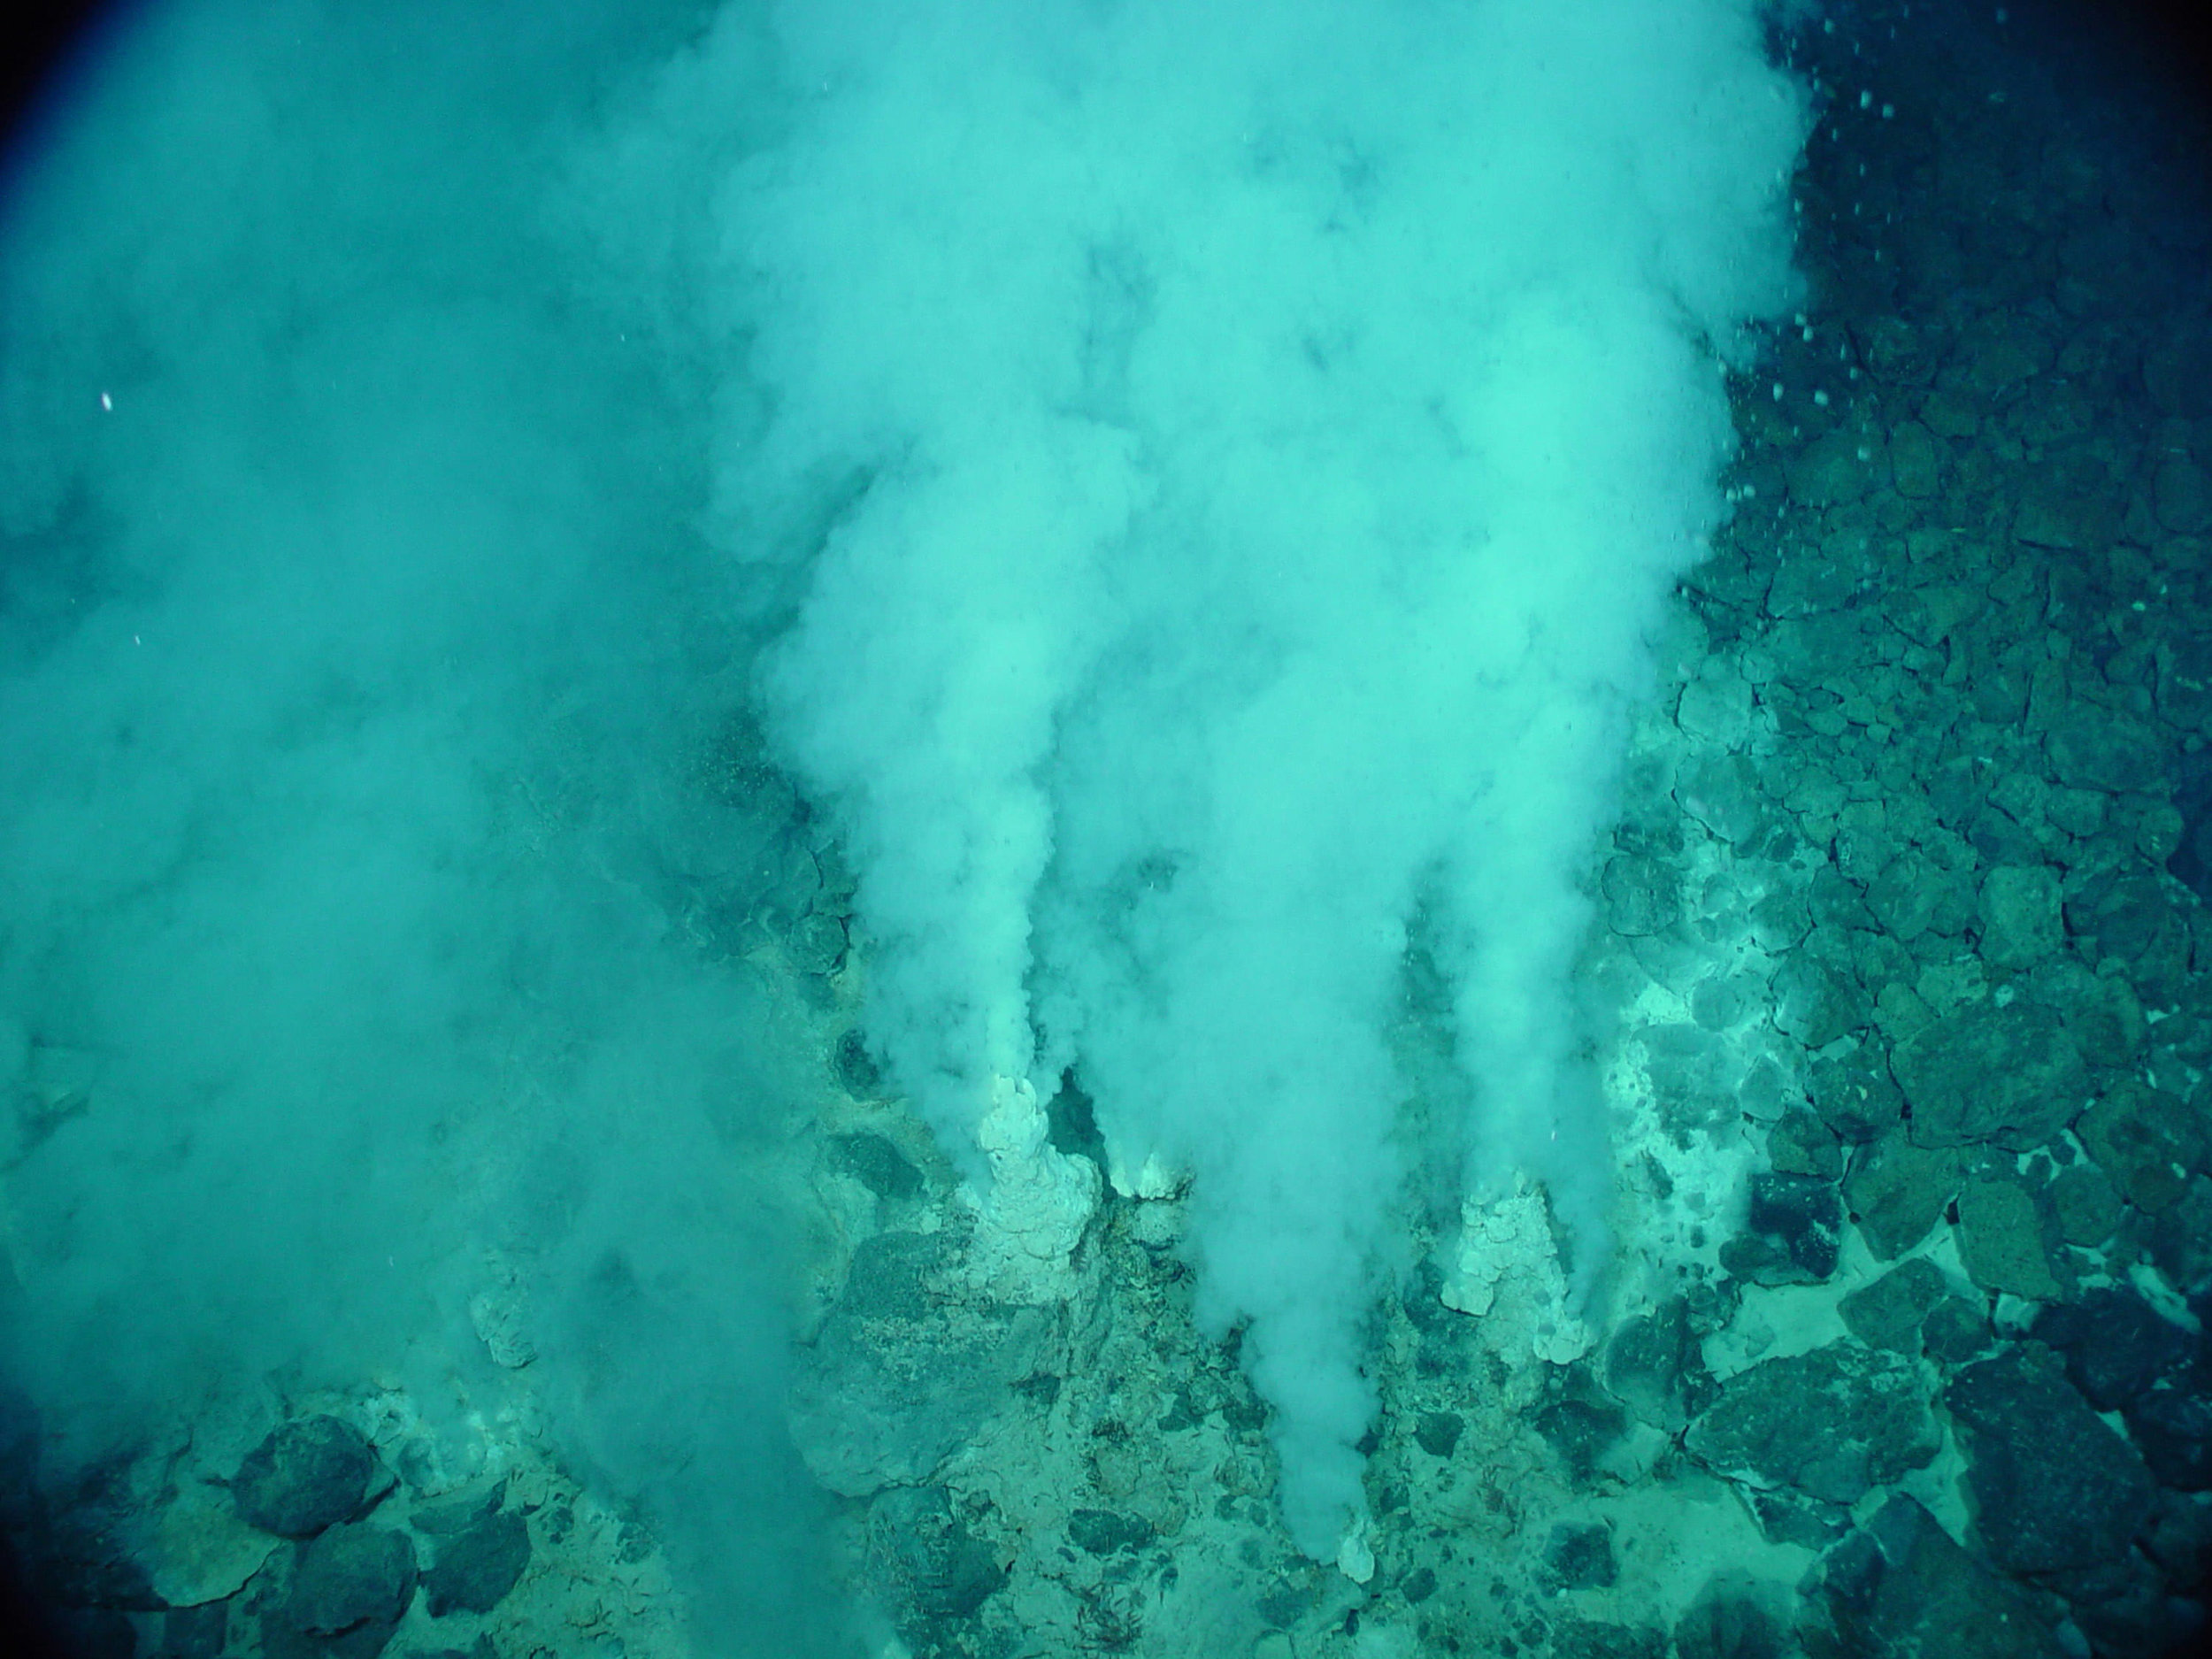 Hydrothermal vents on Earth's ocean floor. Credit: NOAA